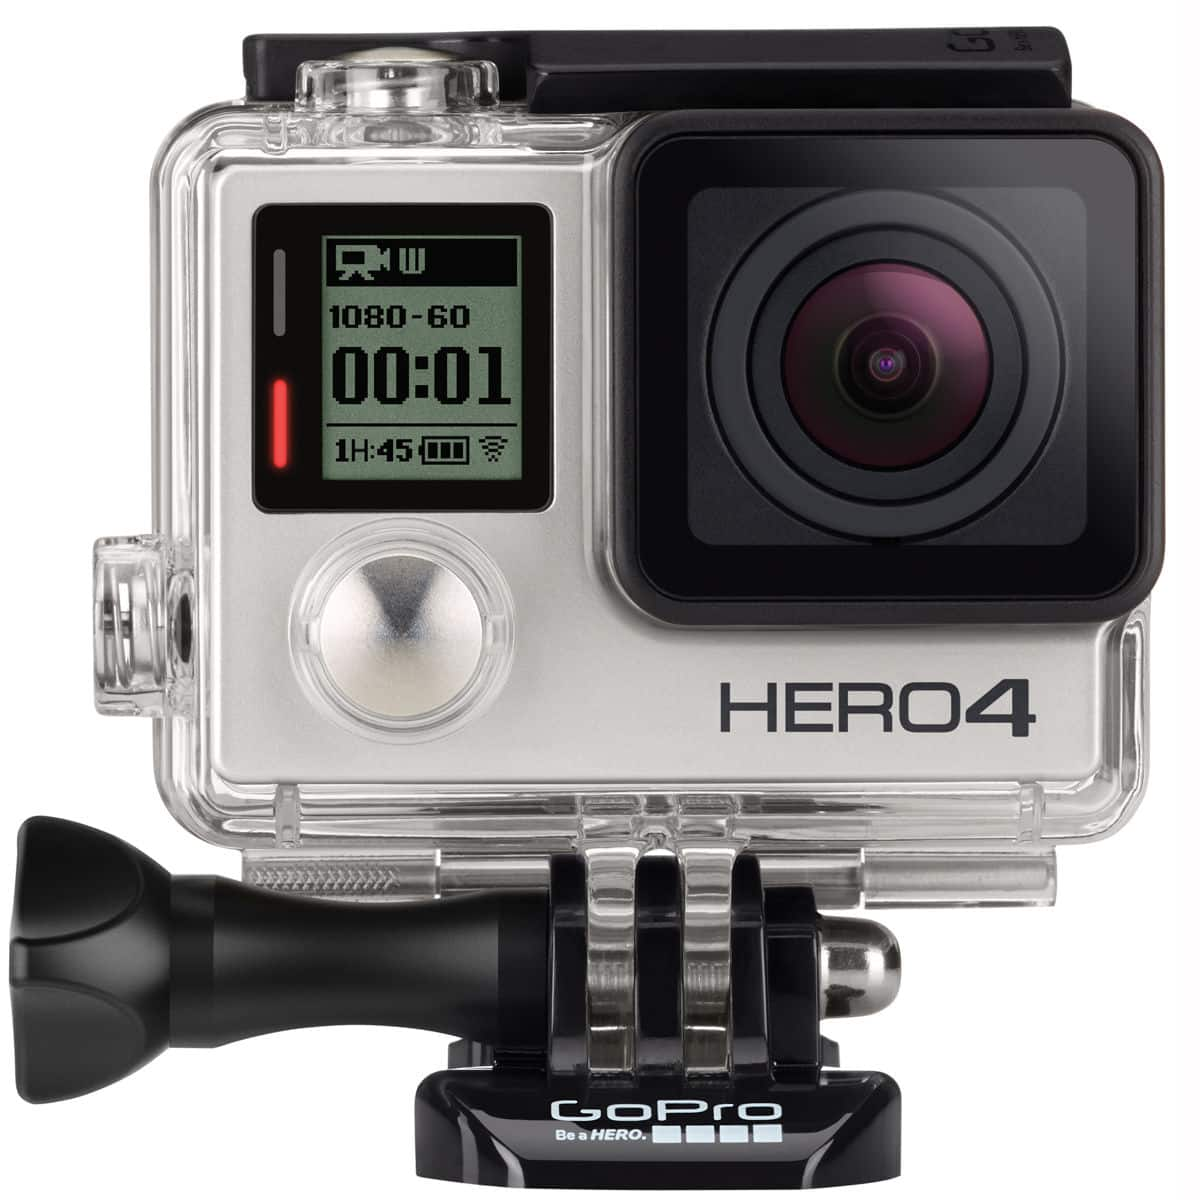 GoPro HERO4 Silver Edition Camera Manufacturer Refurbished $244  1 year warranty